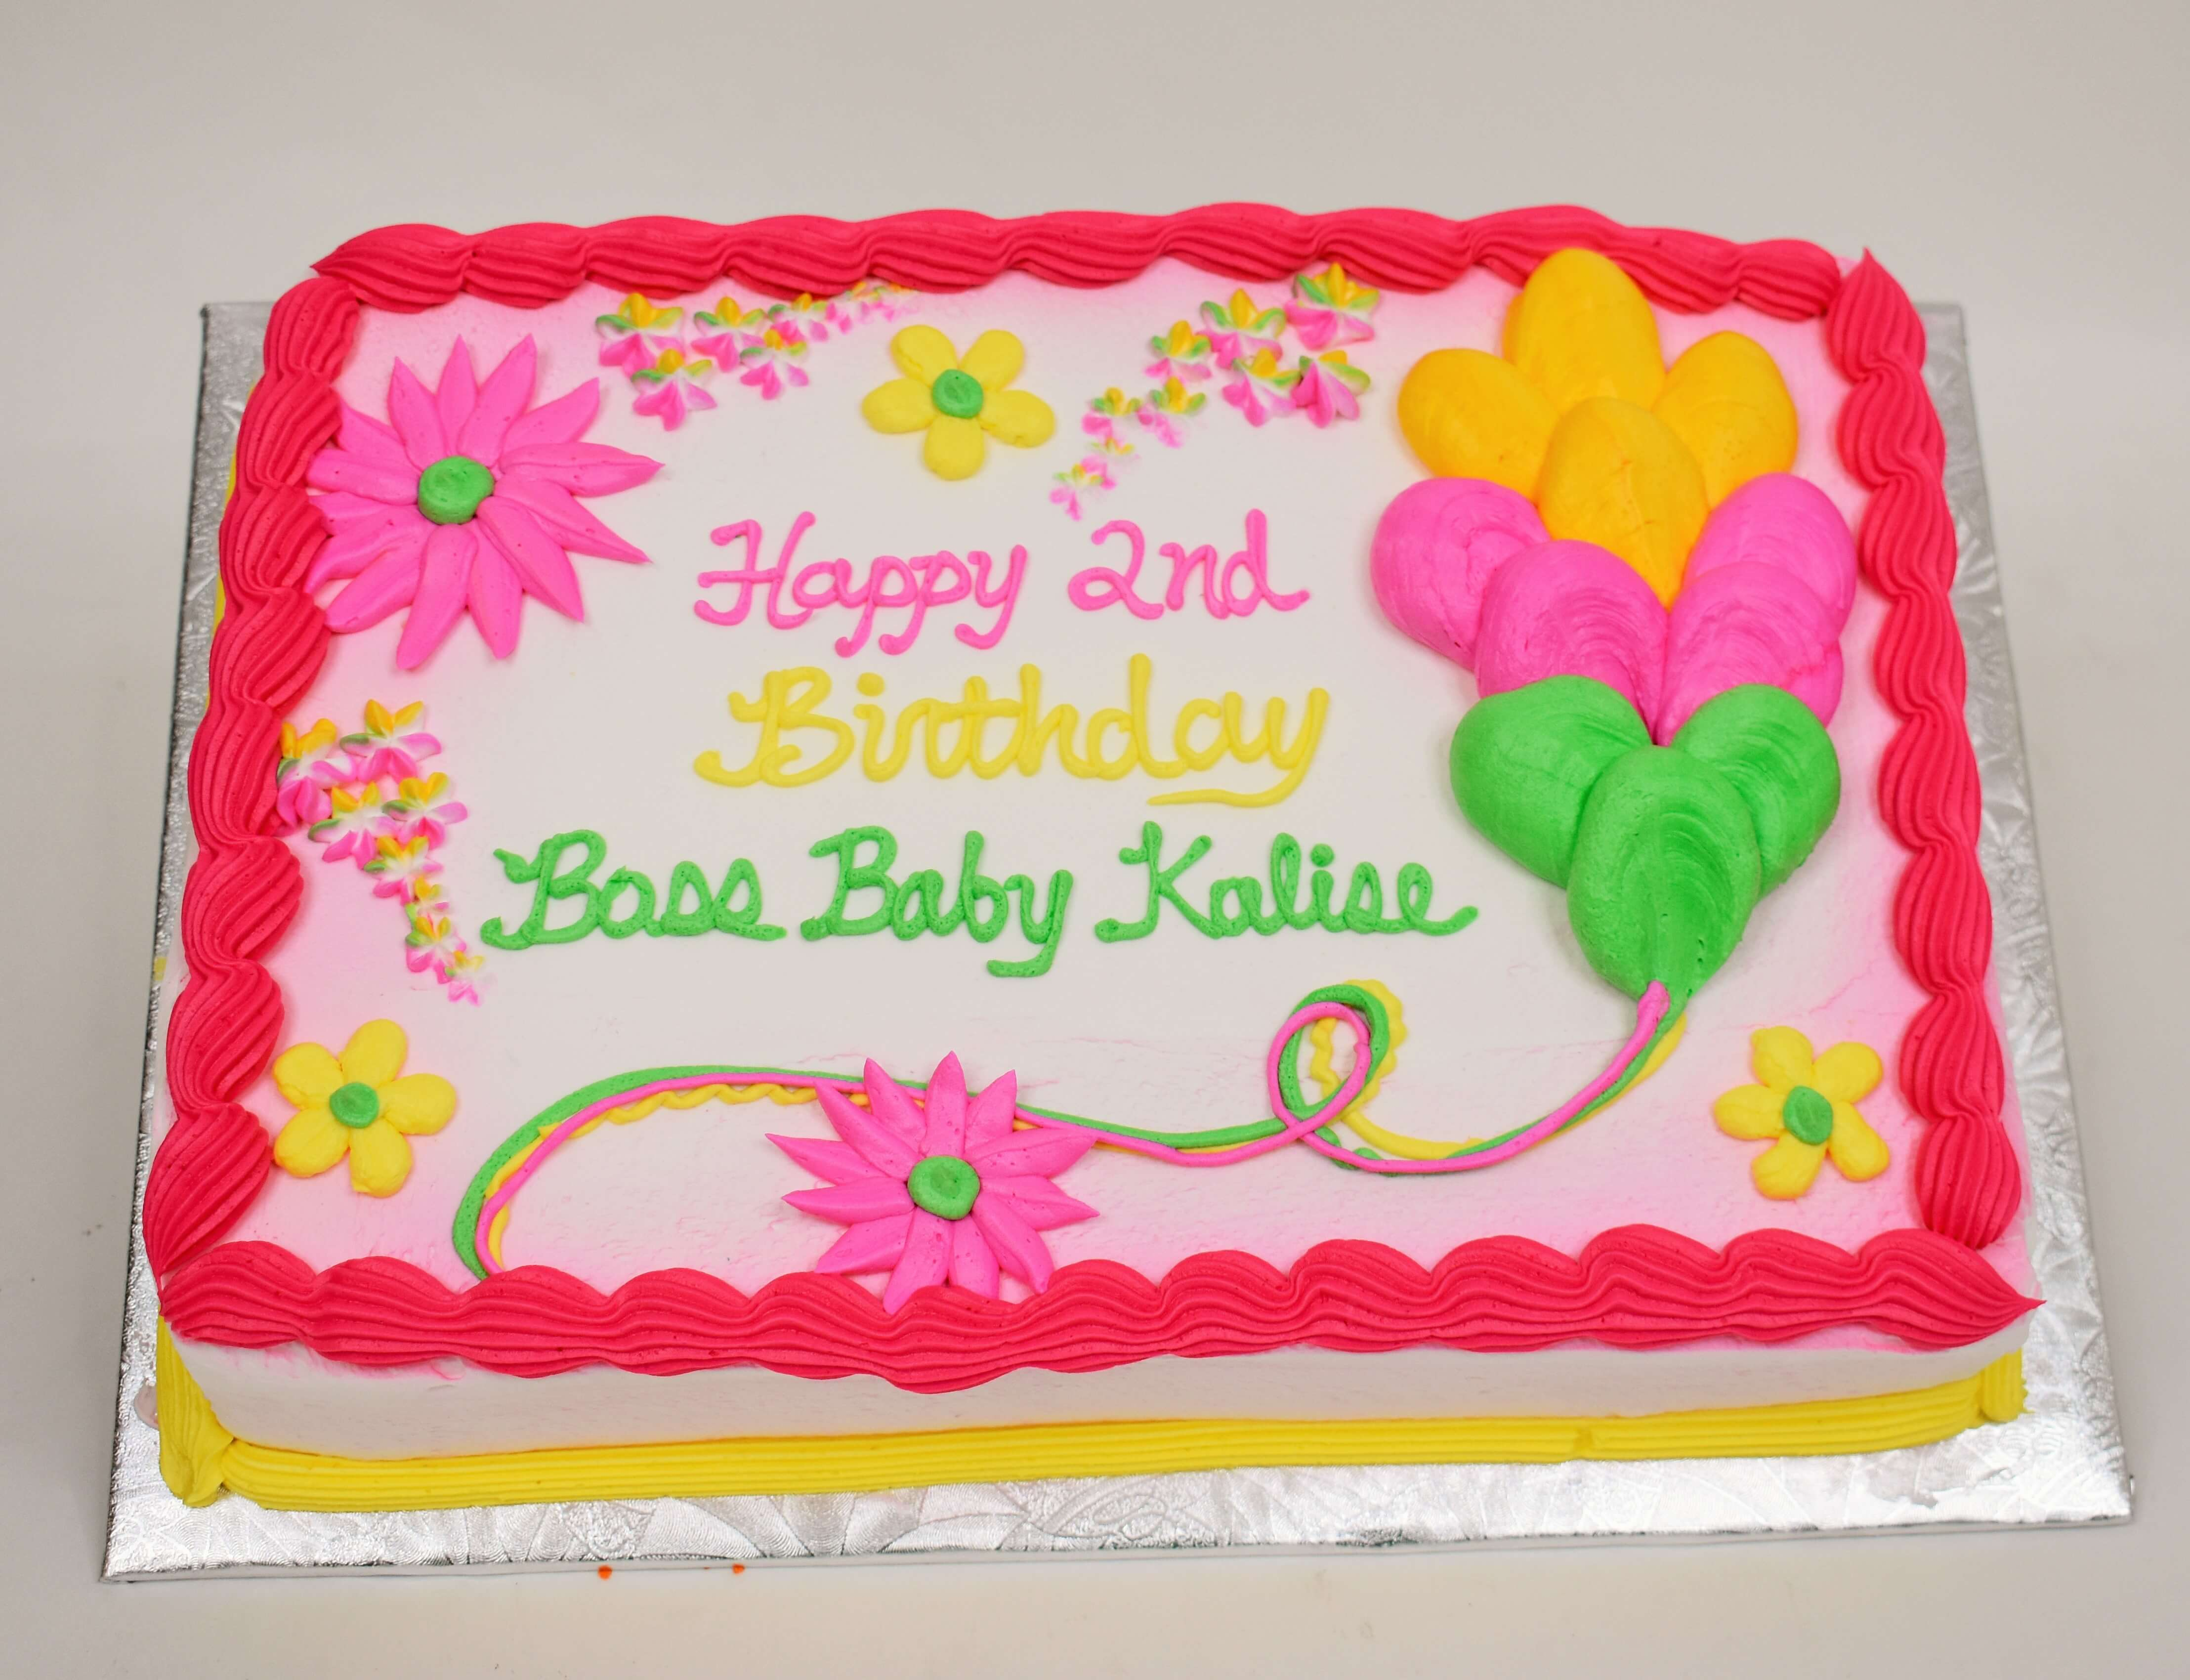 McArthur's Bakery Custom Cake with Pink and Yellow Flowers and Balloons